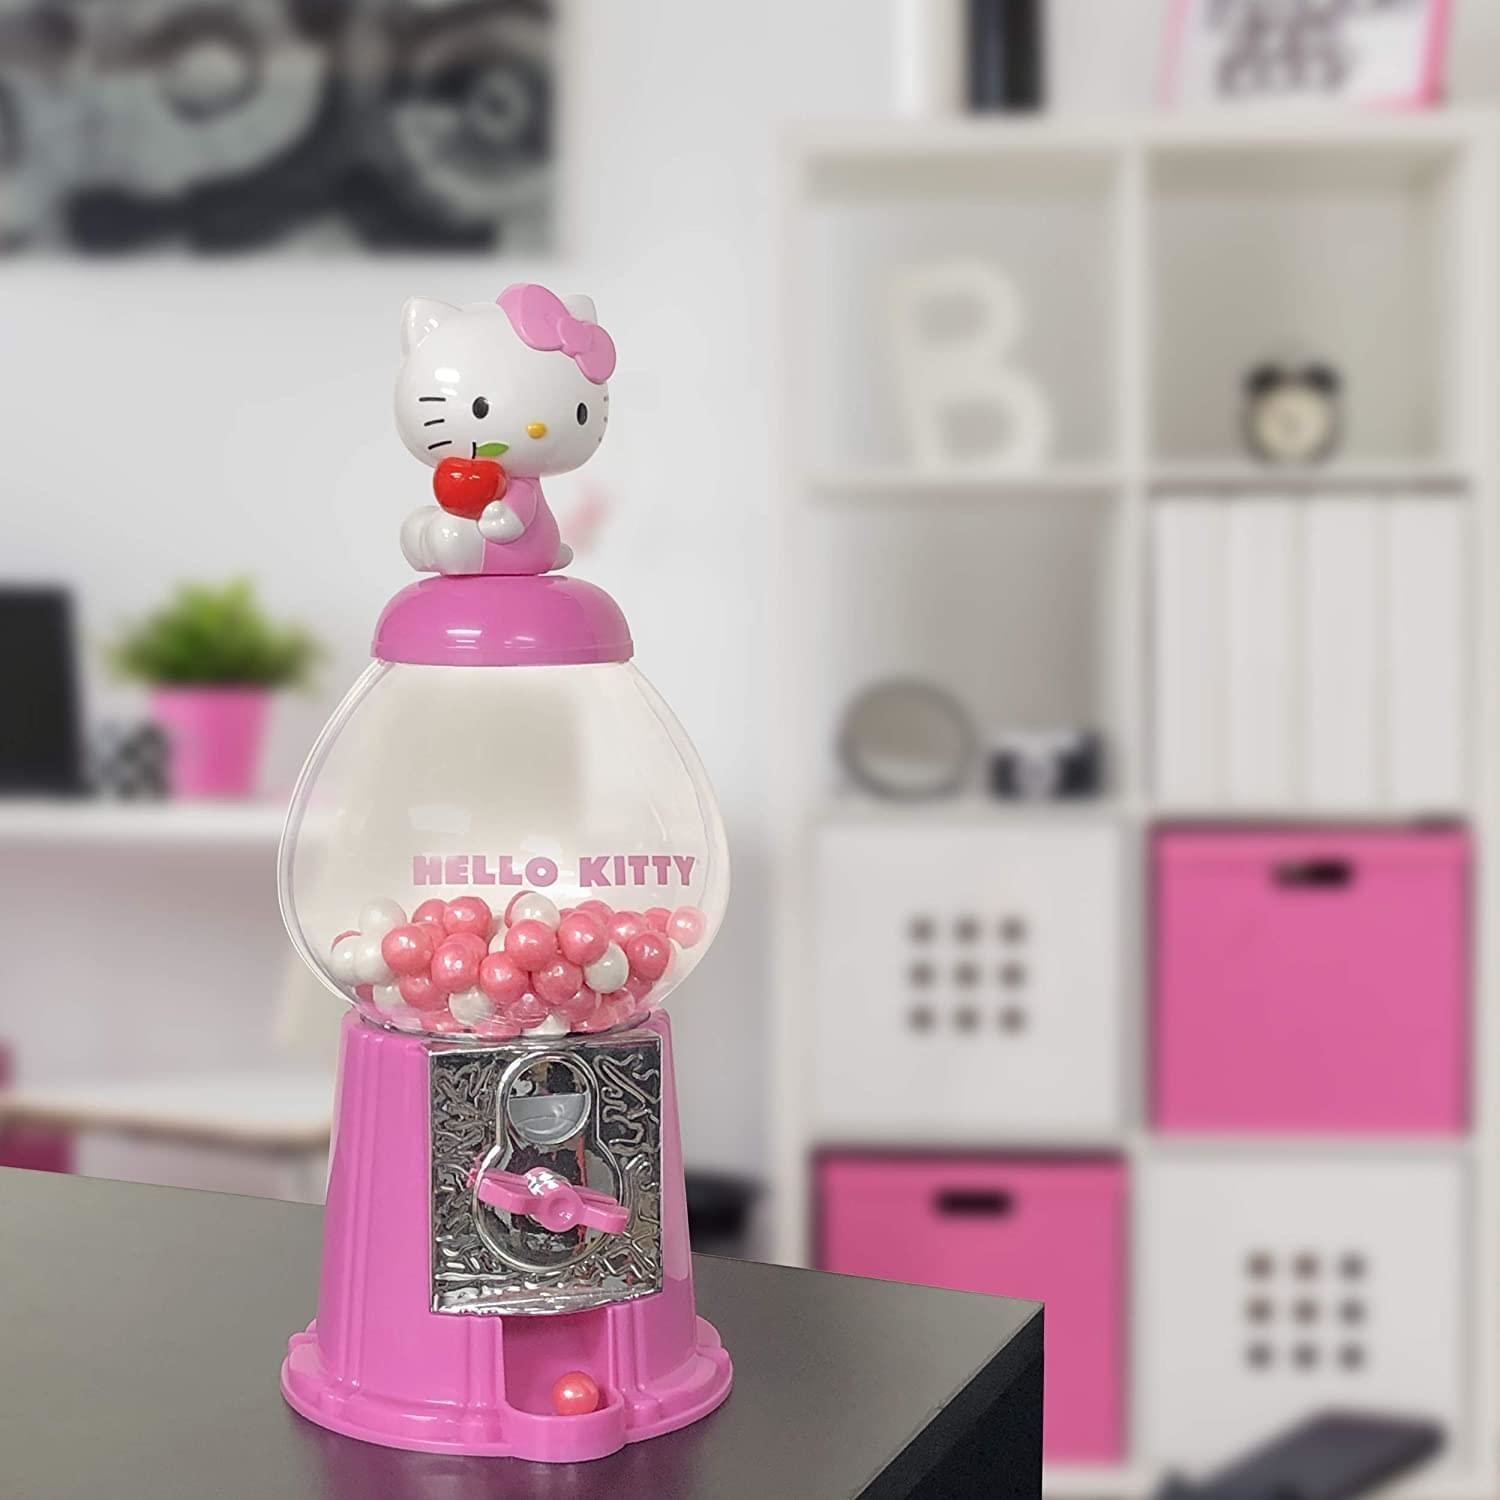 pink mini gumball machine with hello kitty holding an apple on top